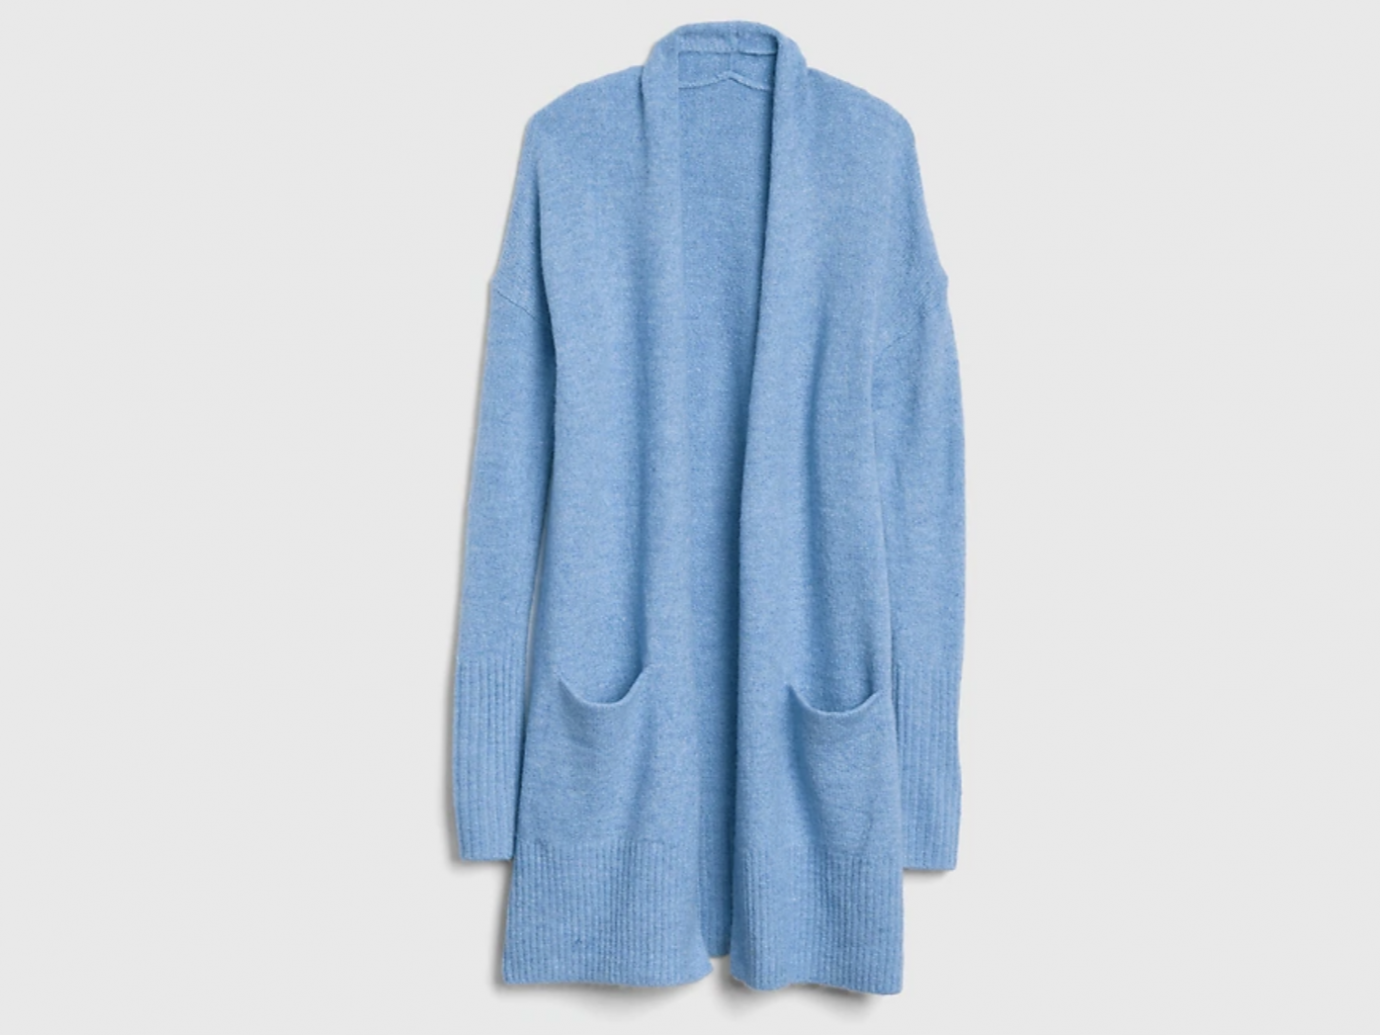 GAP Longline Open-Front Cardigan Sweater